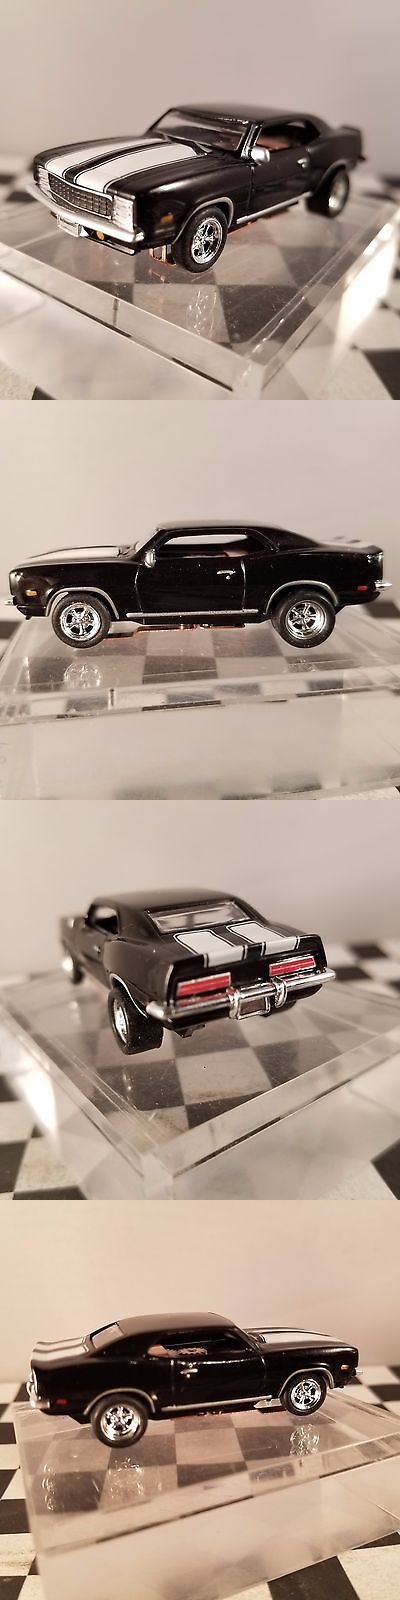 1970-Now 2619: 1969 Chevy Camaro Z28 Black Ho Slot Car T-Jet 500 Custom Wheels And Tires -> BUY IT NOW ONLY: $42.88 on eBay!